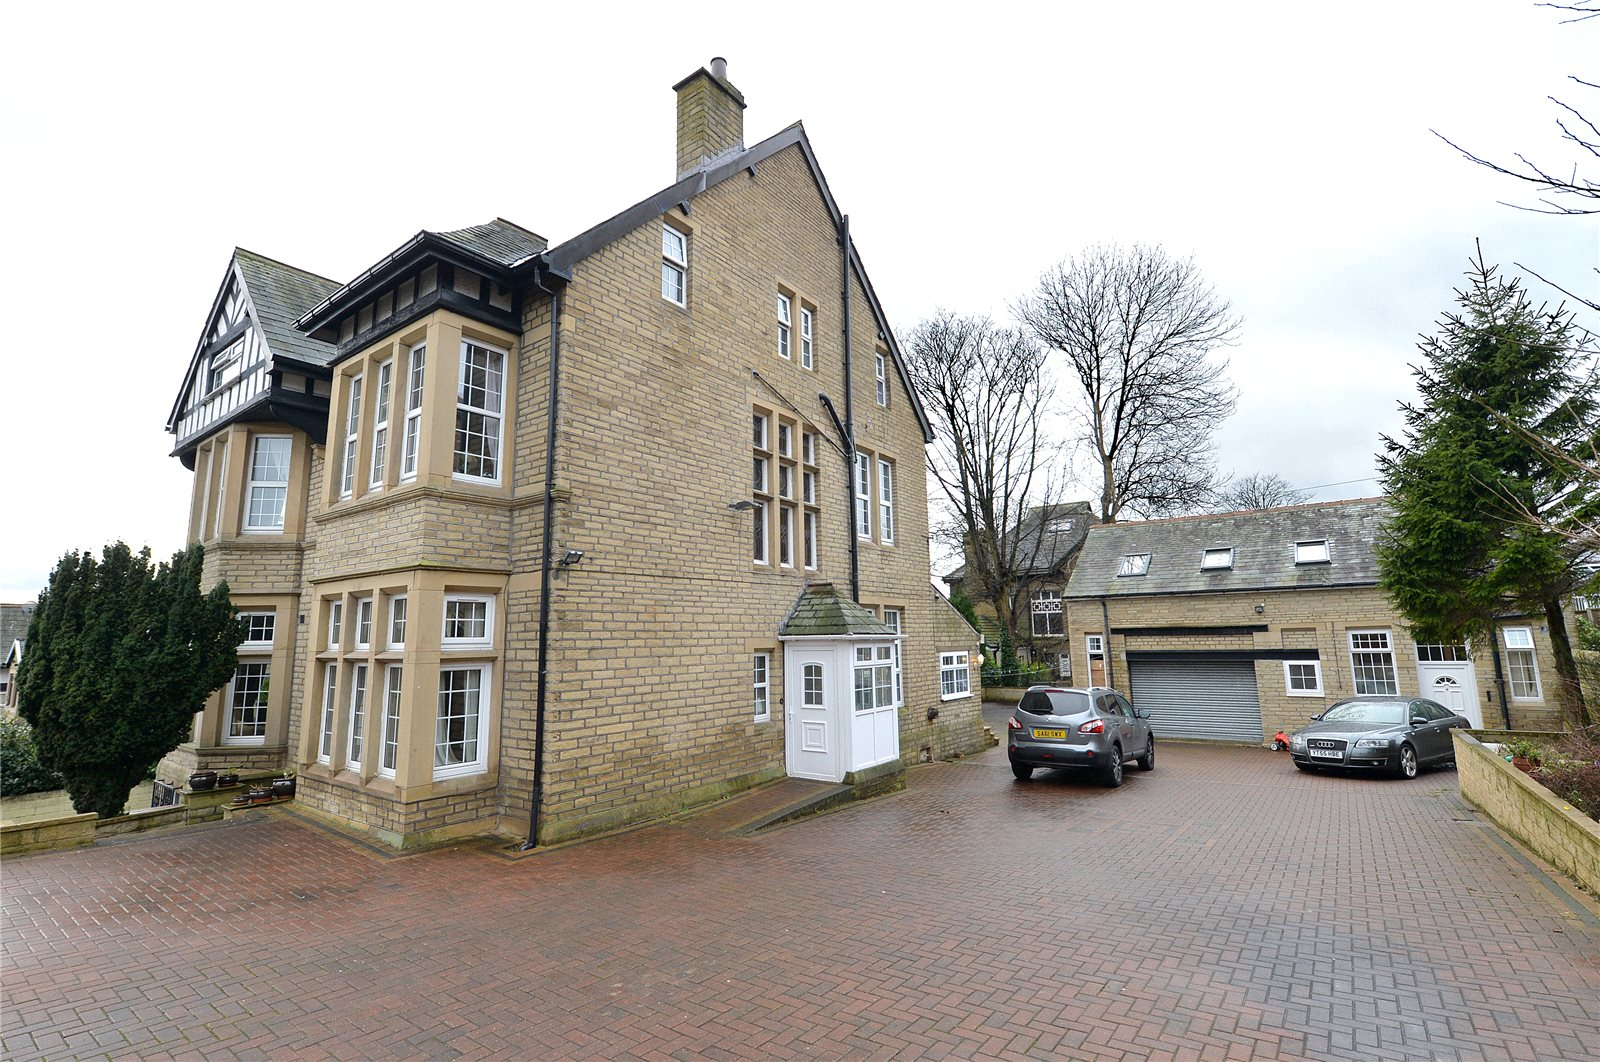 Whitegates Bradford 8 Bedroom House For Sale In Cranbourne